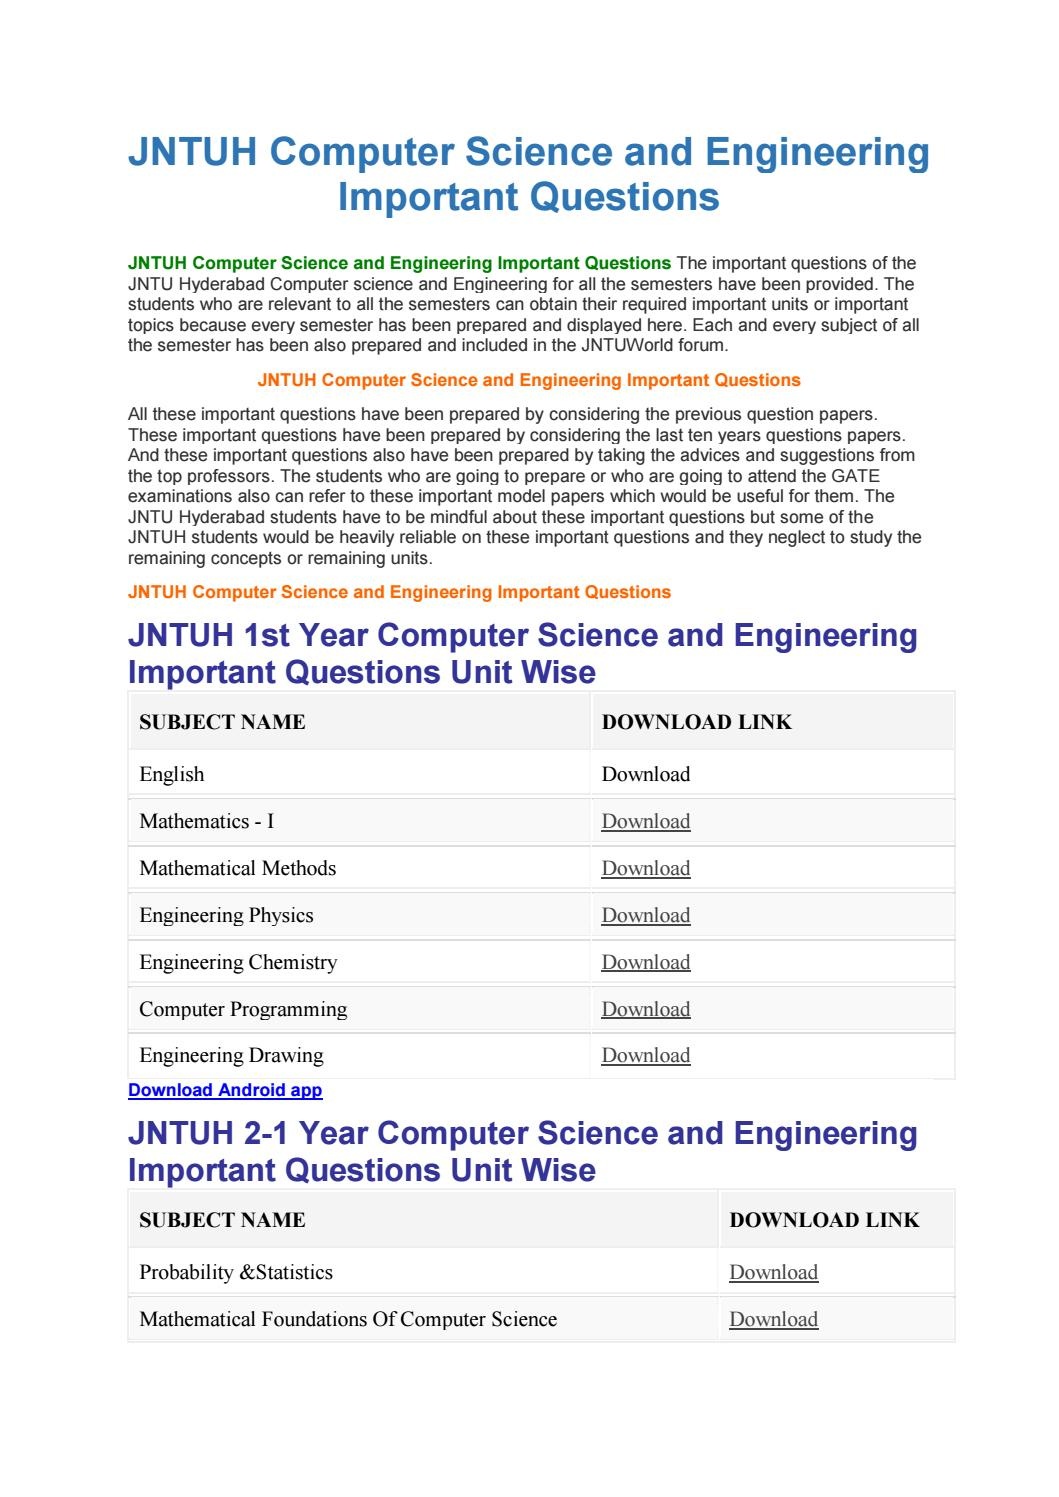 JNTUH Computer Science and Engineering Important Questions